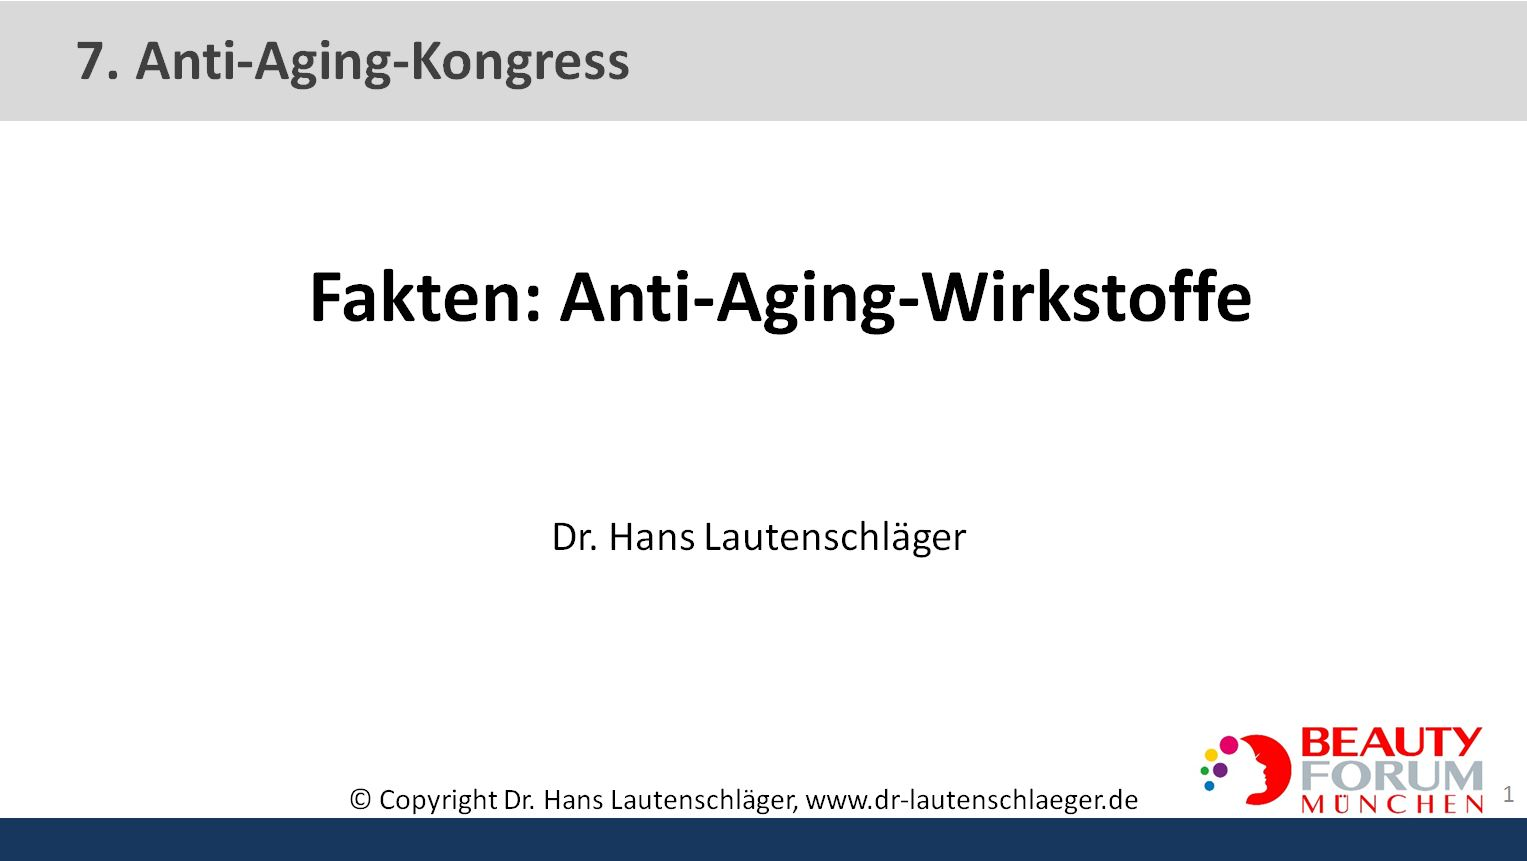 Facts on anti-aging agents